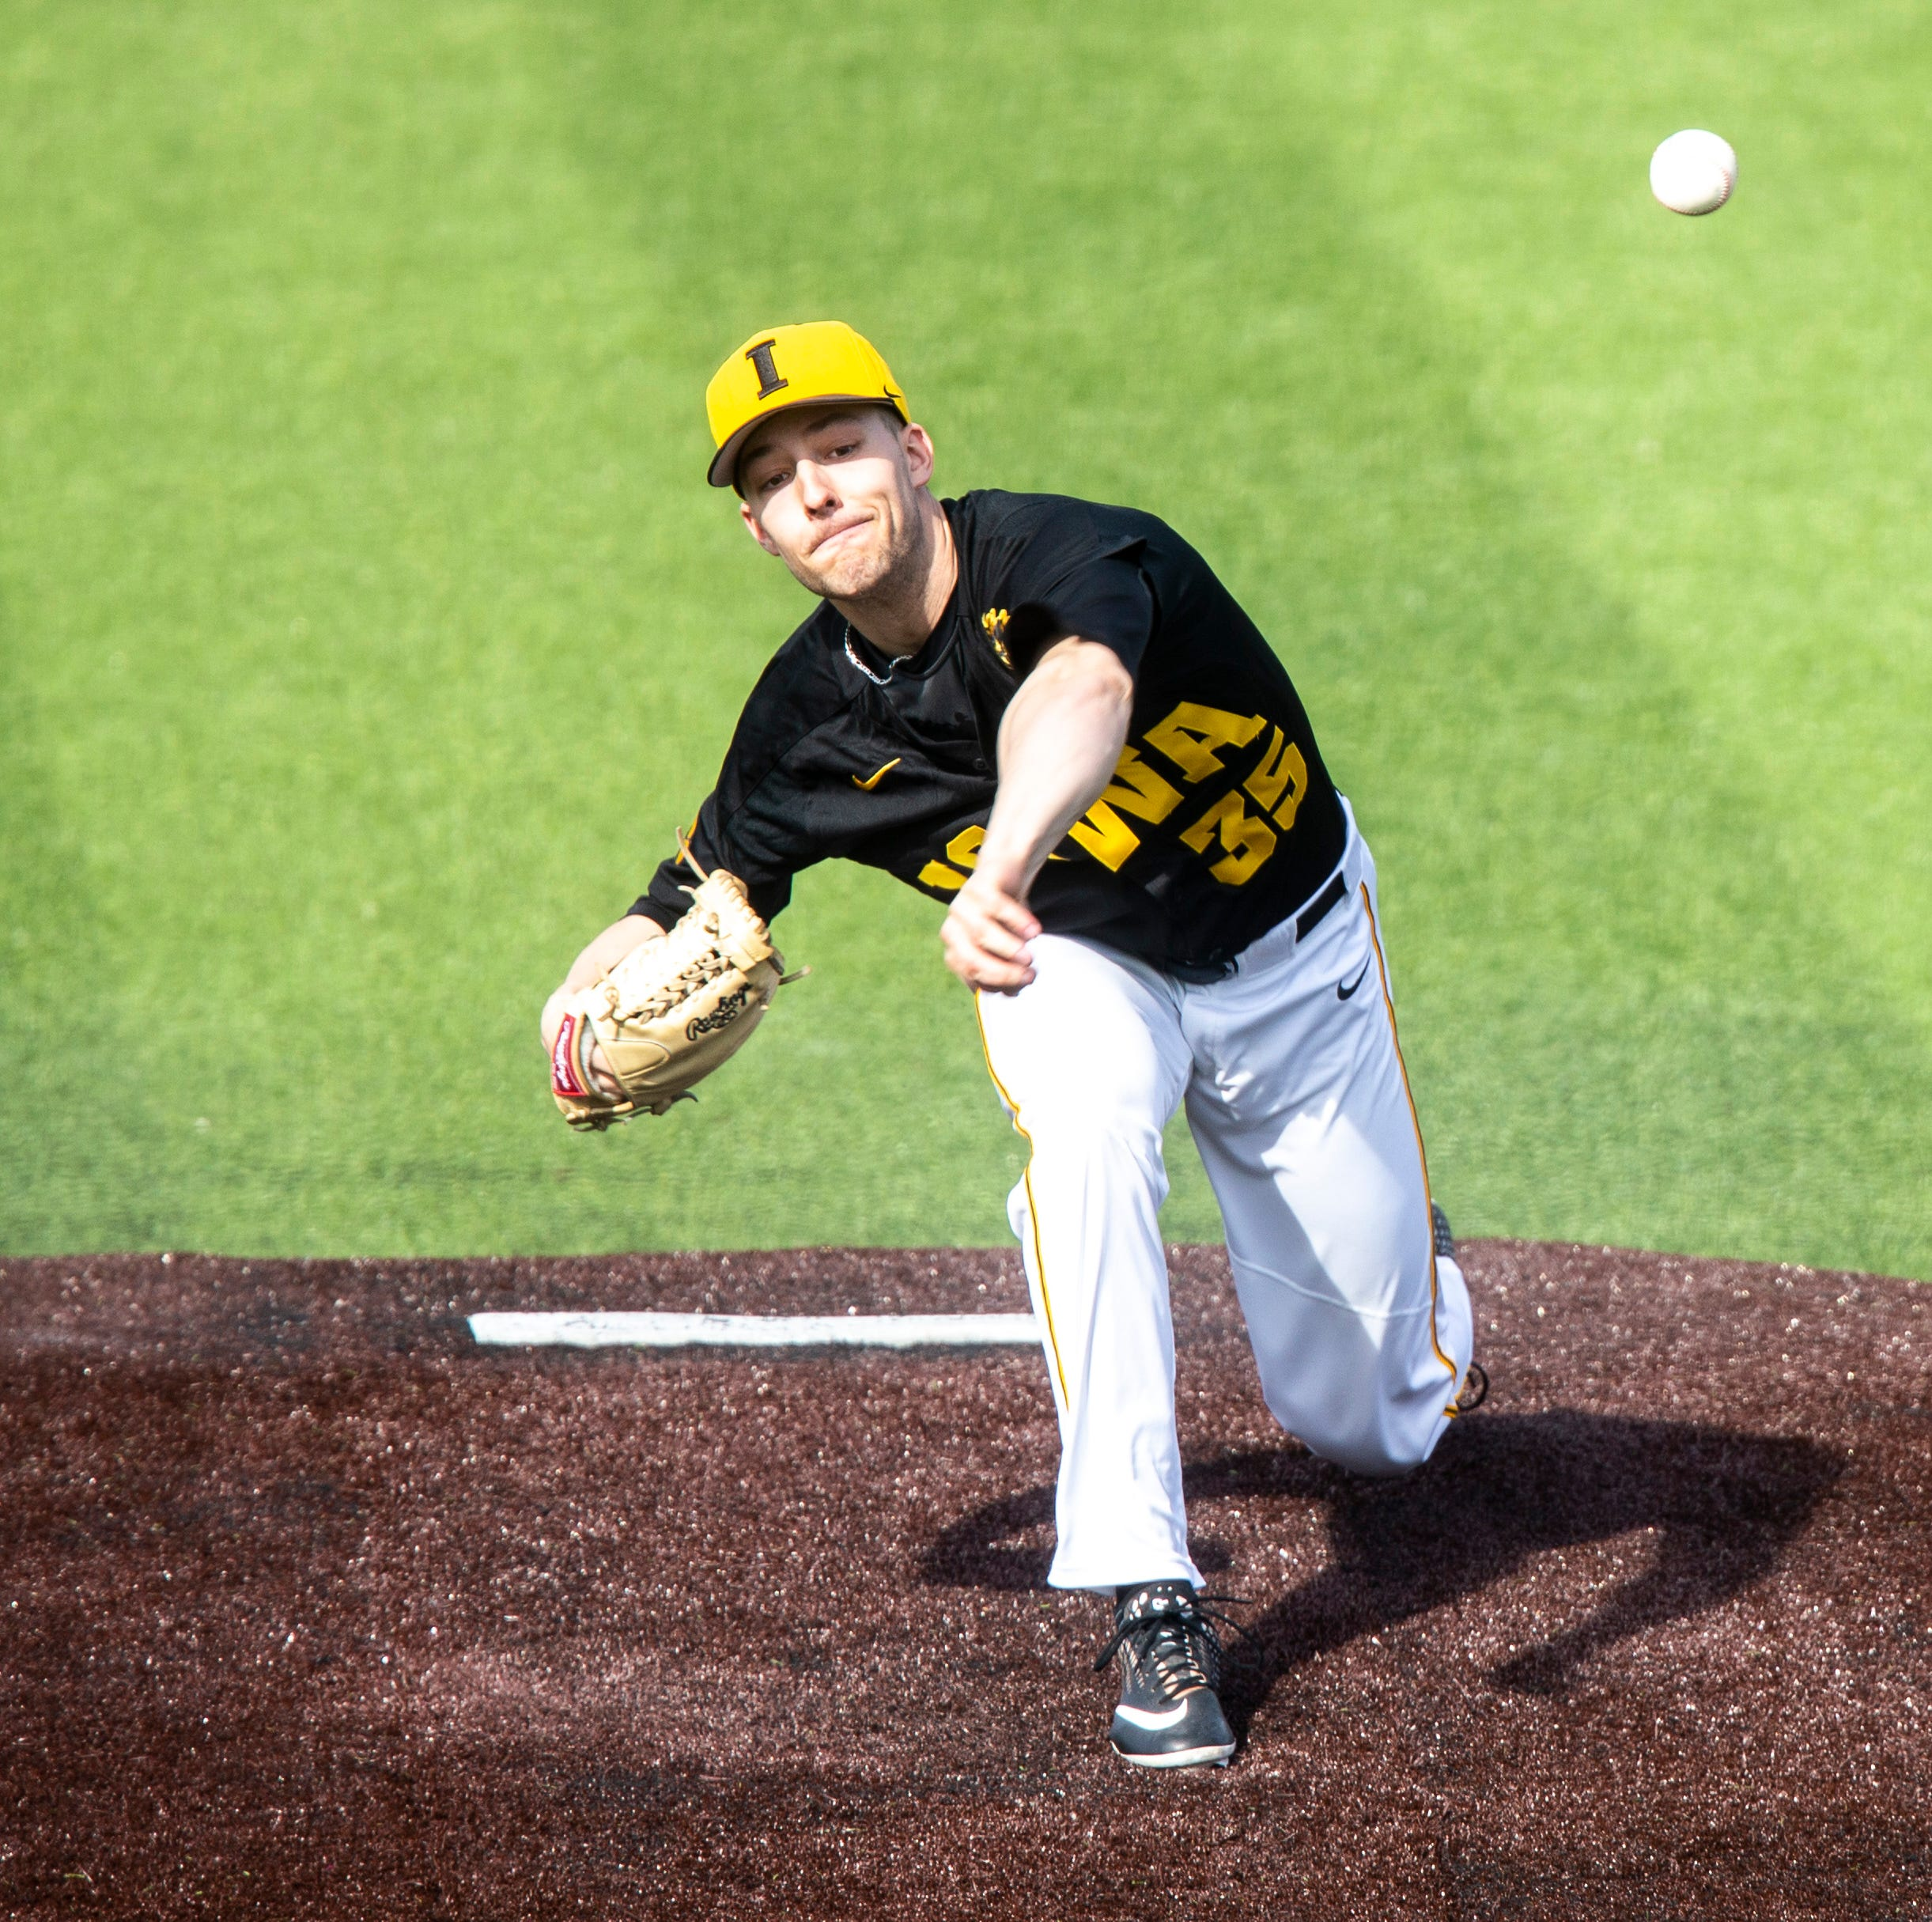 Iowa baseball: Hawkeyes slide by UC Irvine, 1-0, for series-clinching win